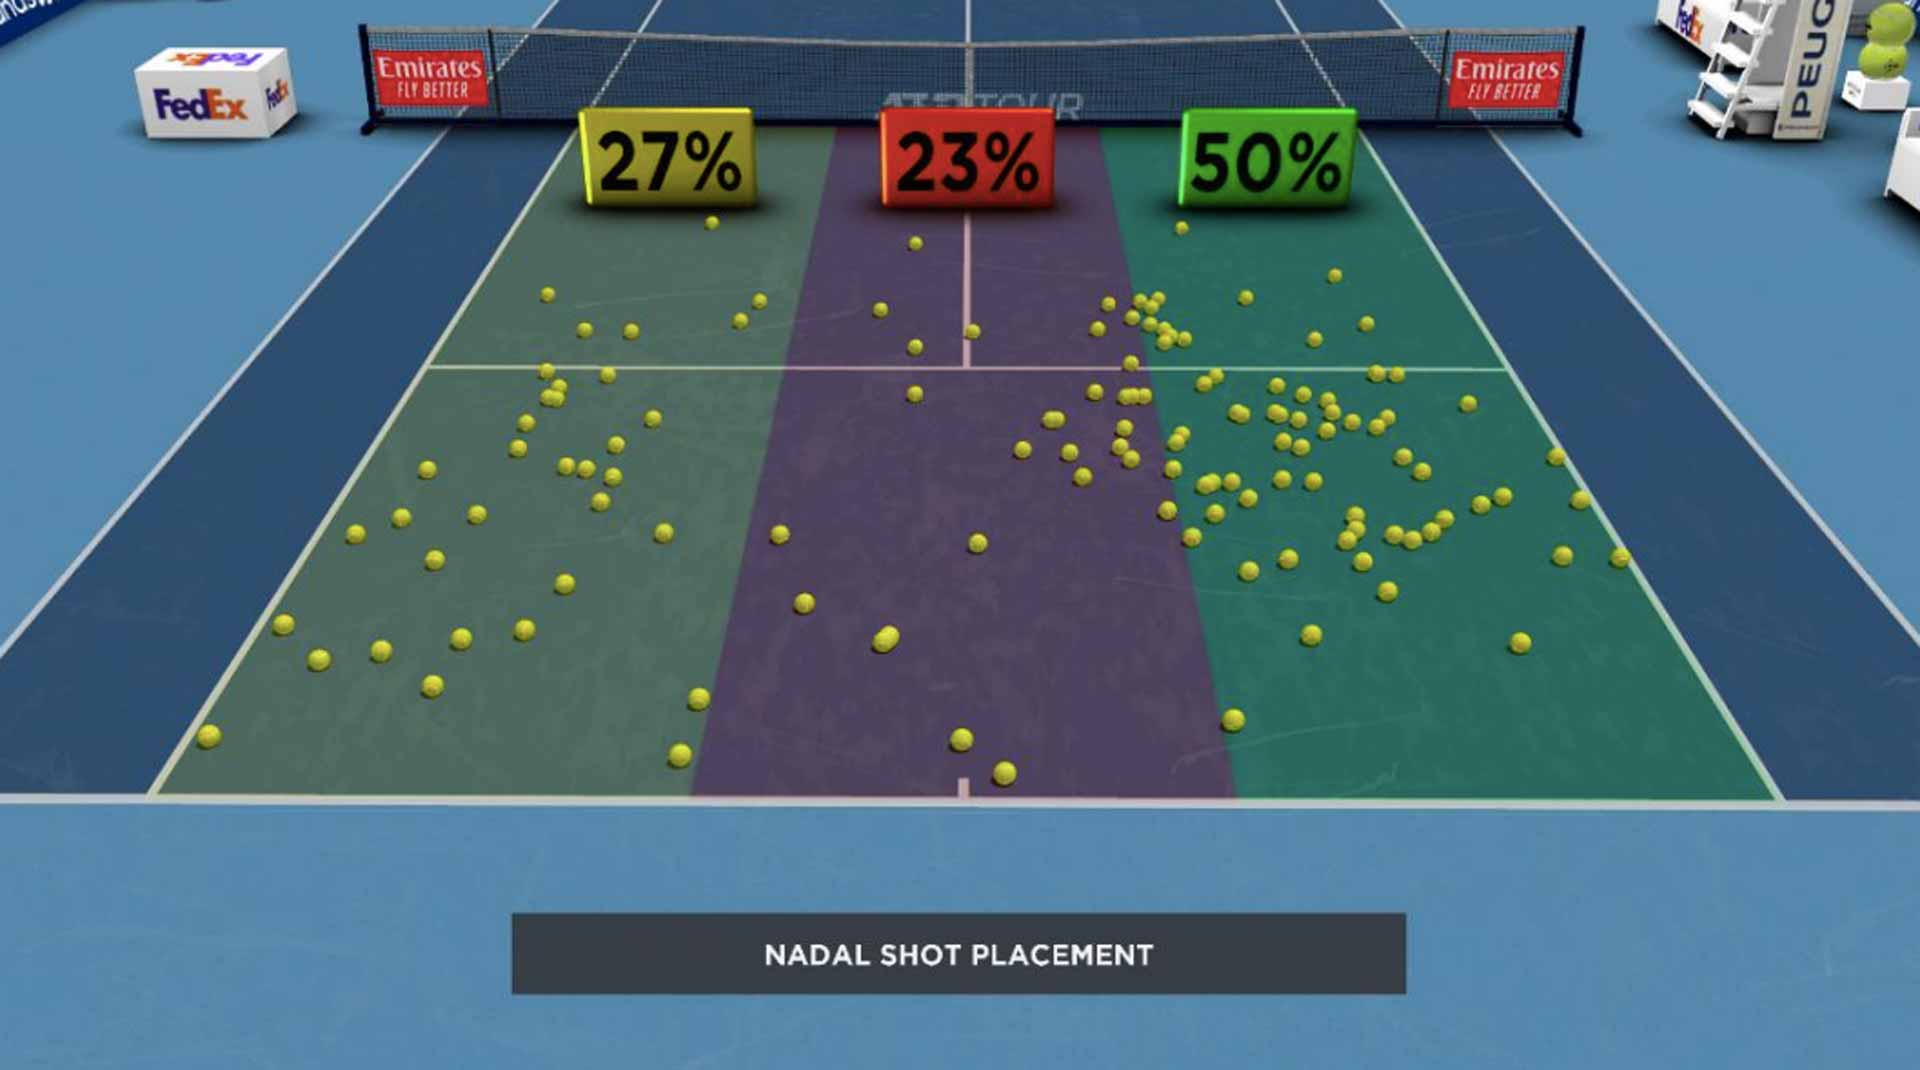 Nadal Shot Placement